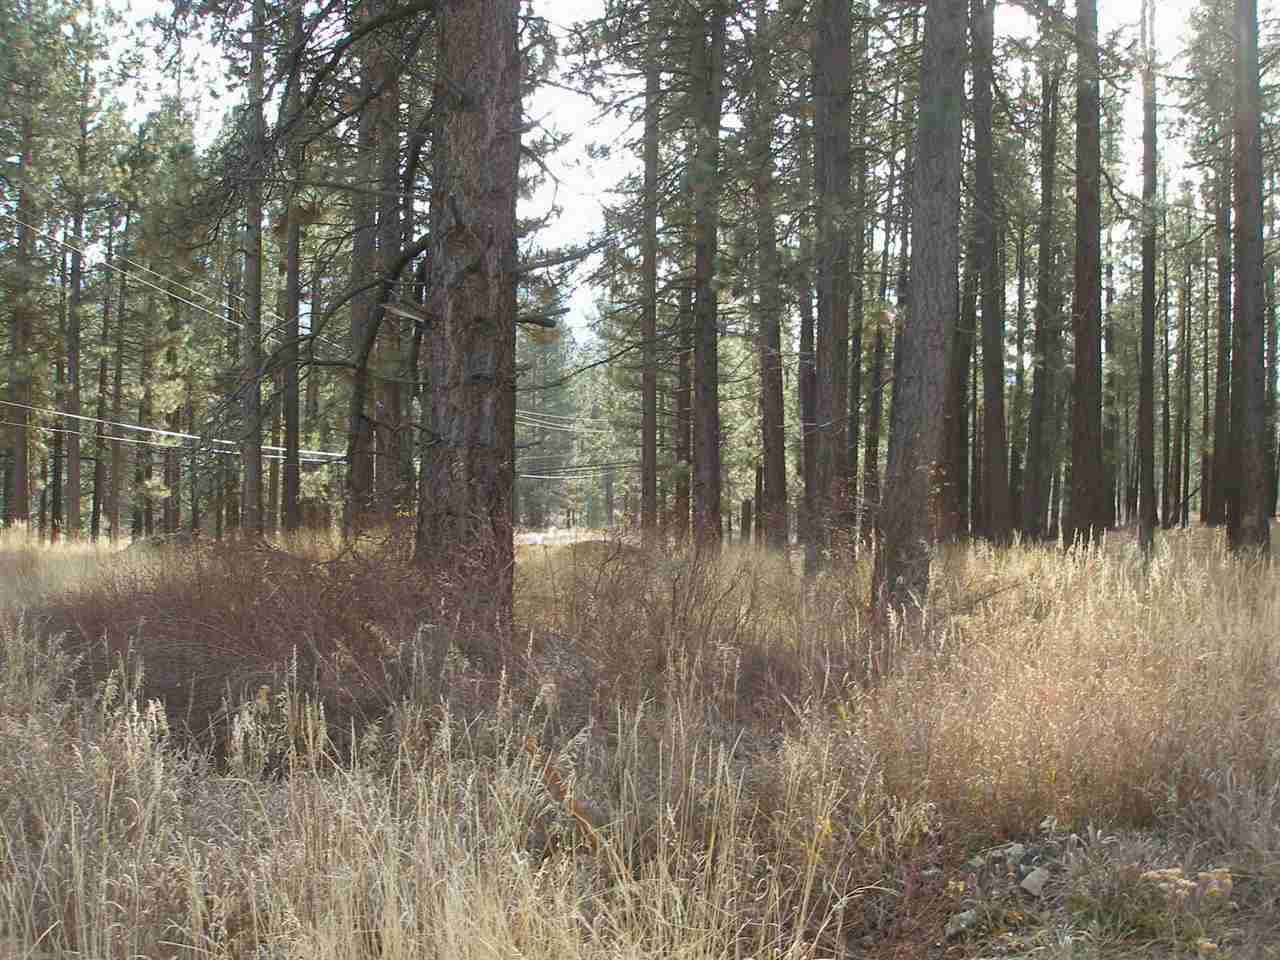 Acreage for Active at 71668 Highway 70 71668 Highway 70 Delleker, California 96122 United States